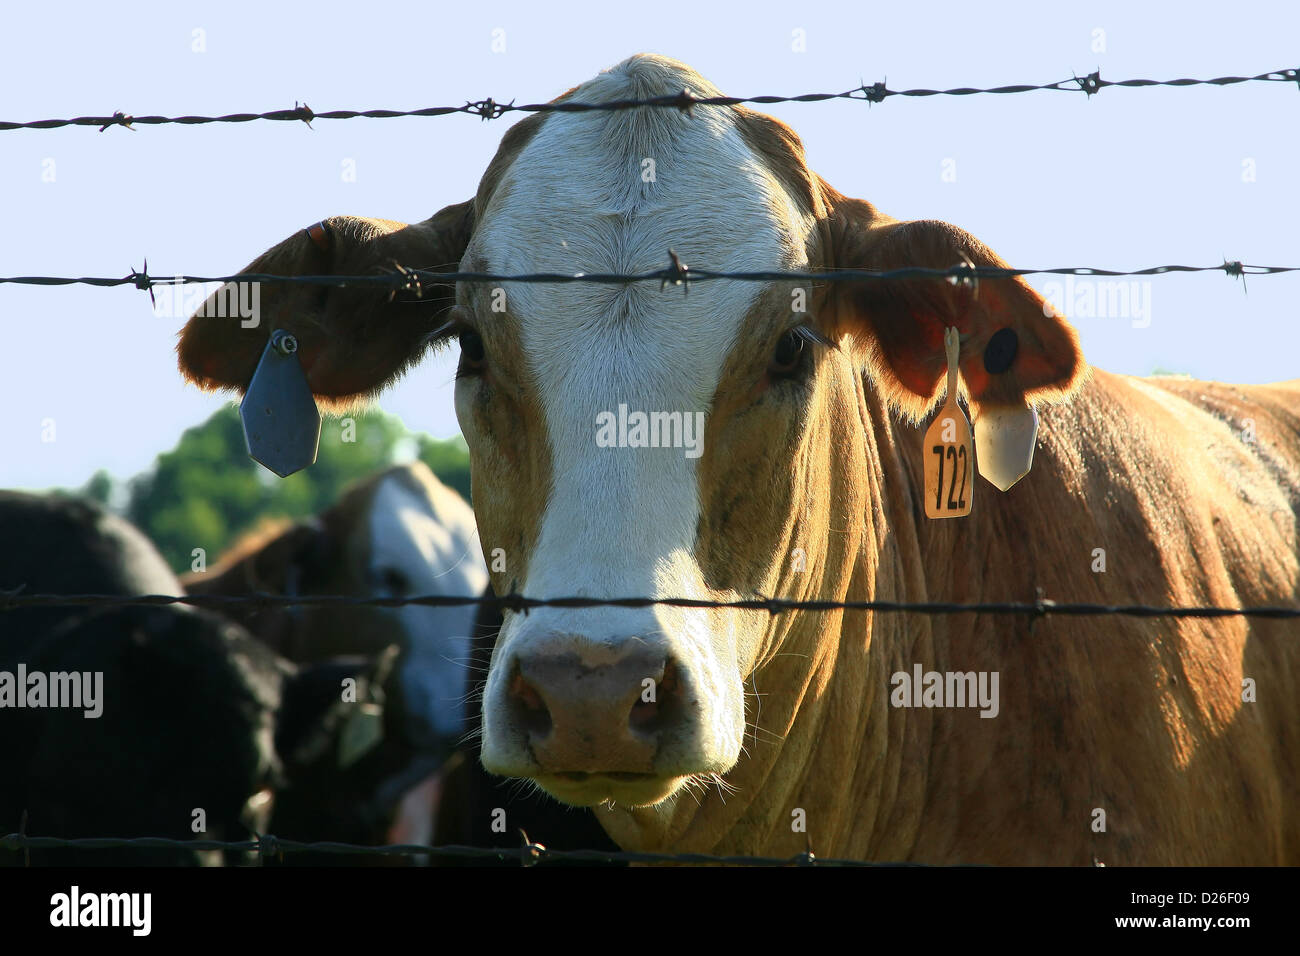 Cow stares through barbwire fence - Stock Image